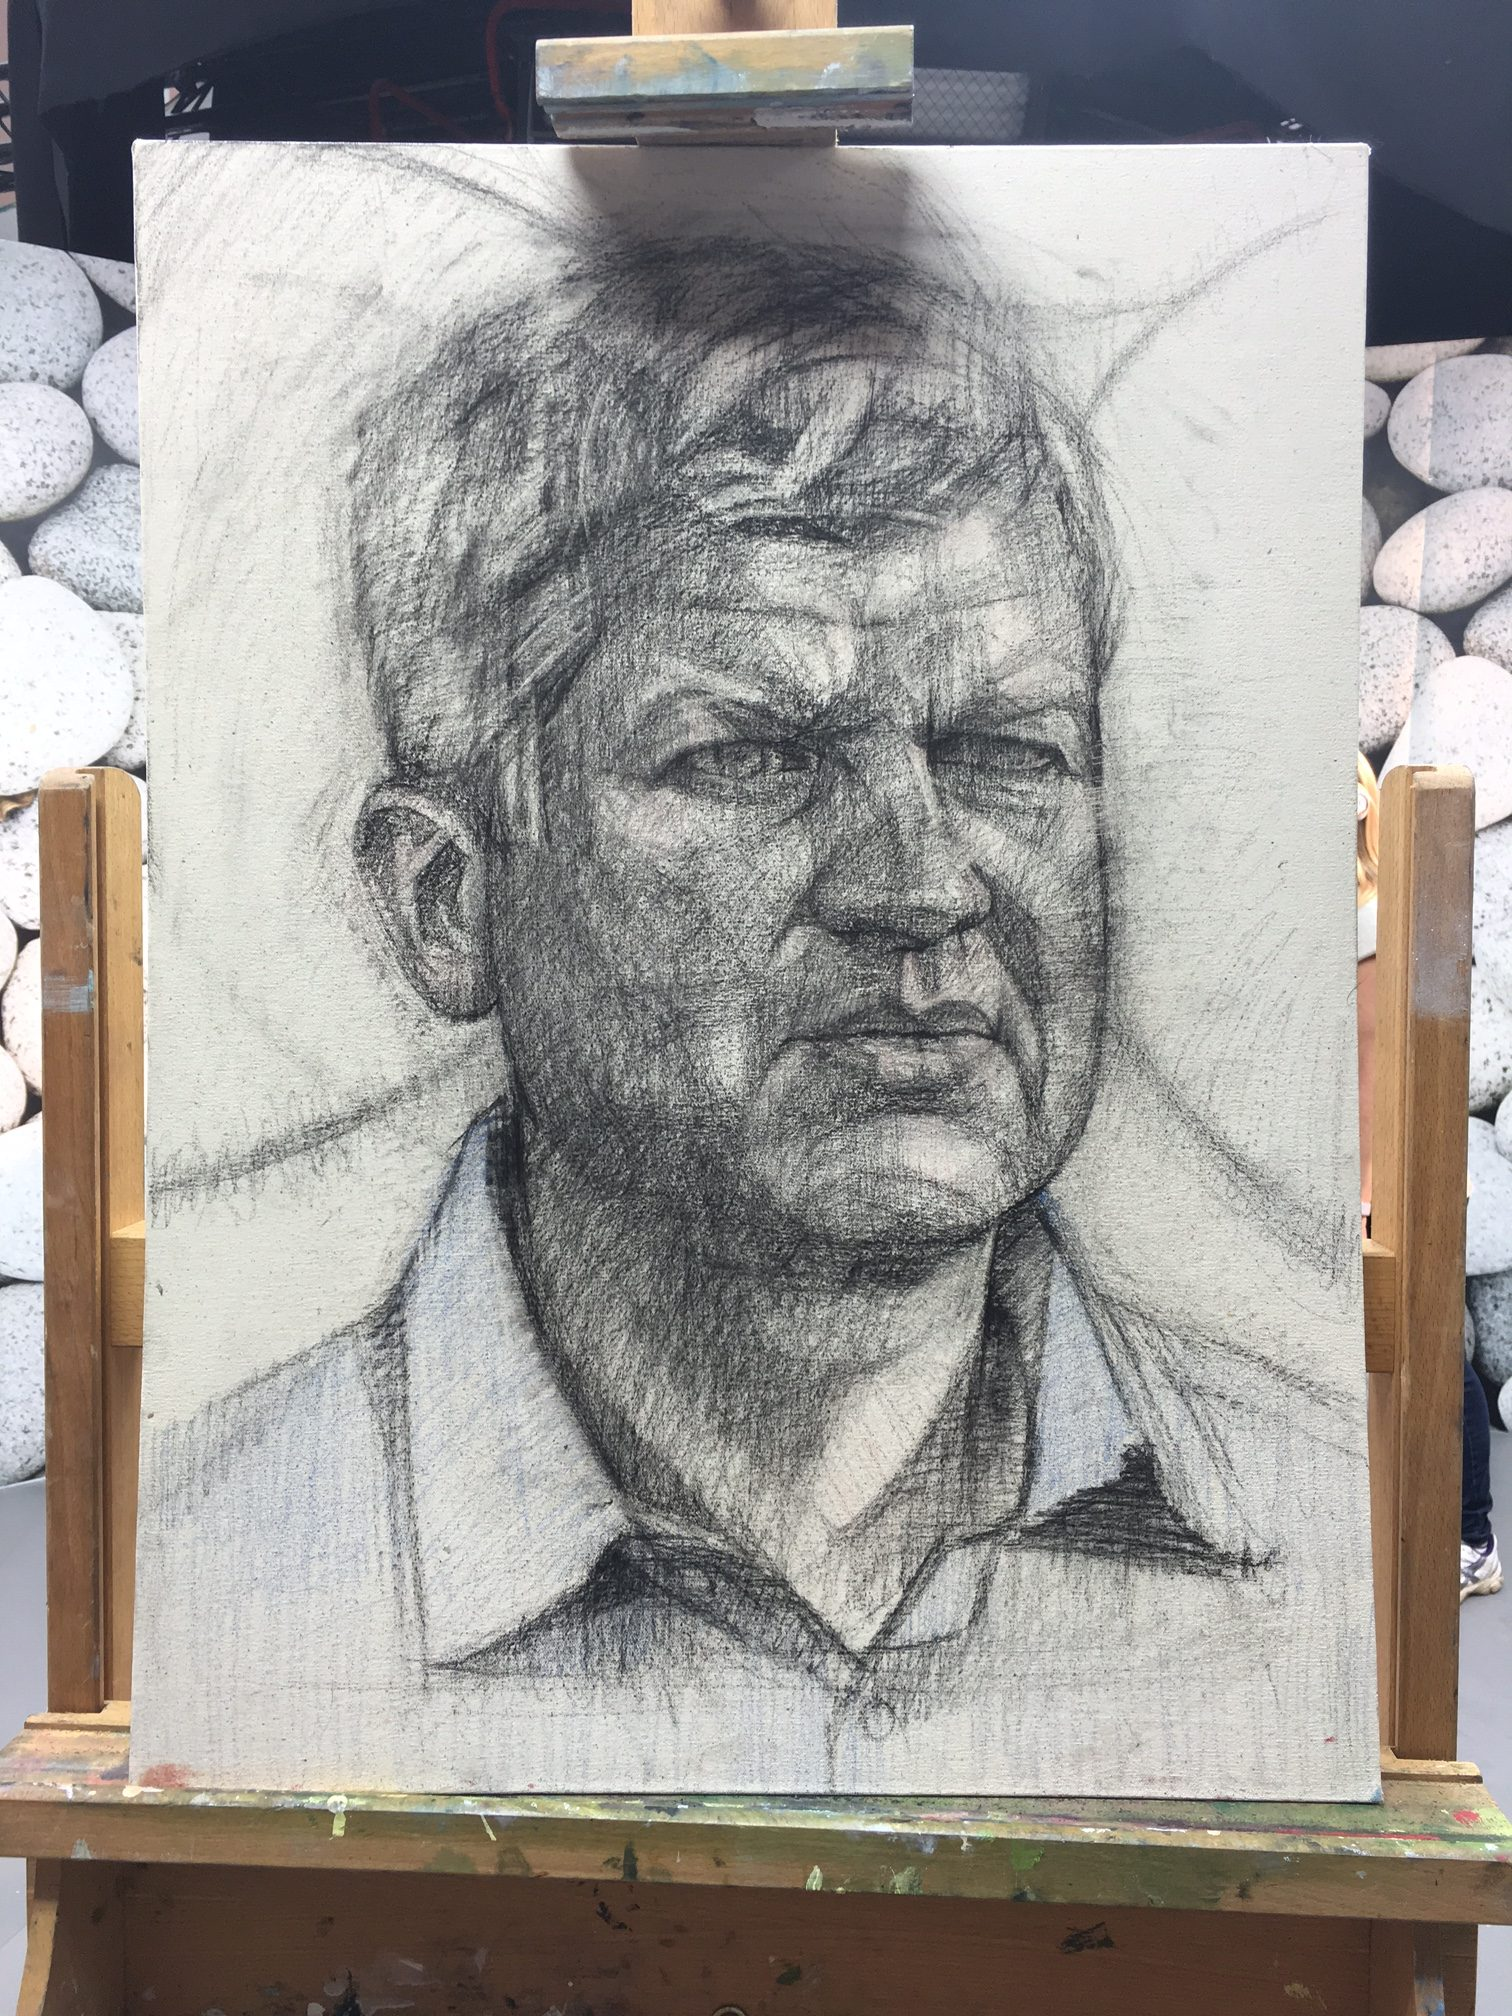 Gareth Reid's Portrait of TV Presenter Adrian Chiles, from the first heat of Sky Arts Portrait Artist of the Year 2017 (Nitram Charcoal and Pastel on Canvas)